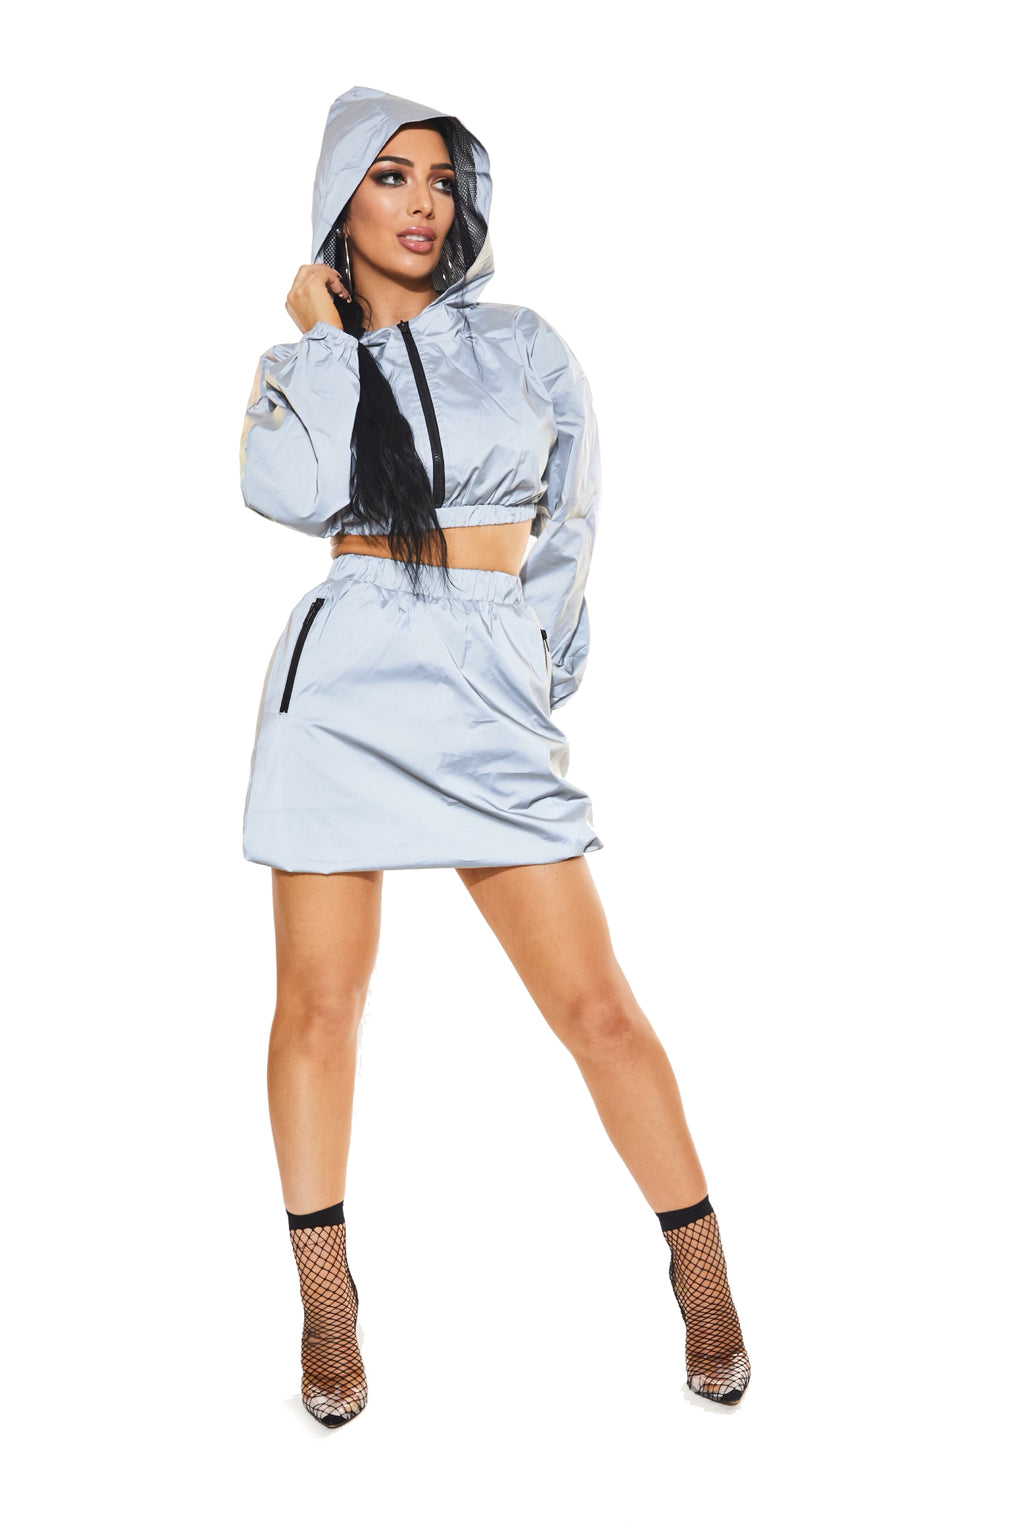 CAN YOU SEE ME NOW?! REFLECTIVE cropped jacket and skirt set - www.prettyboutique.com